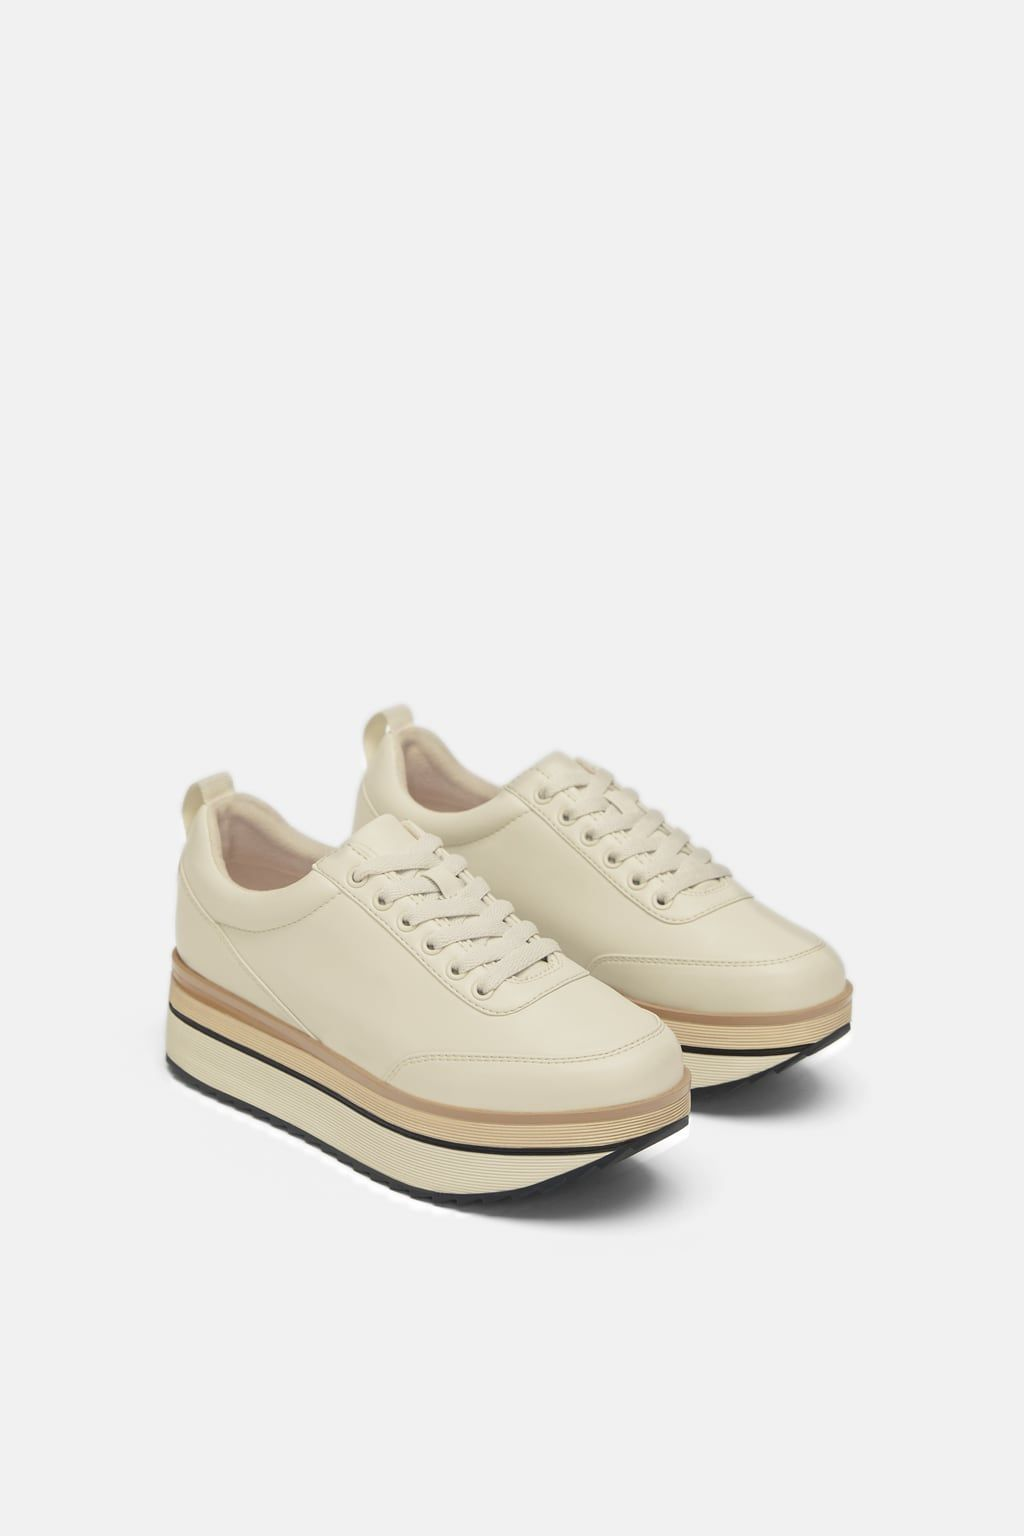 1a6d47531f Image 1 of TWO-TONE PLATFORM SNEAKERS from Zara | Shoes in 2019 ...